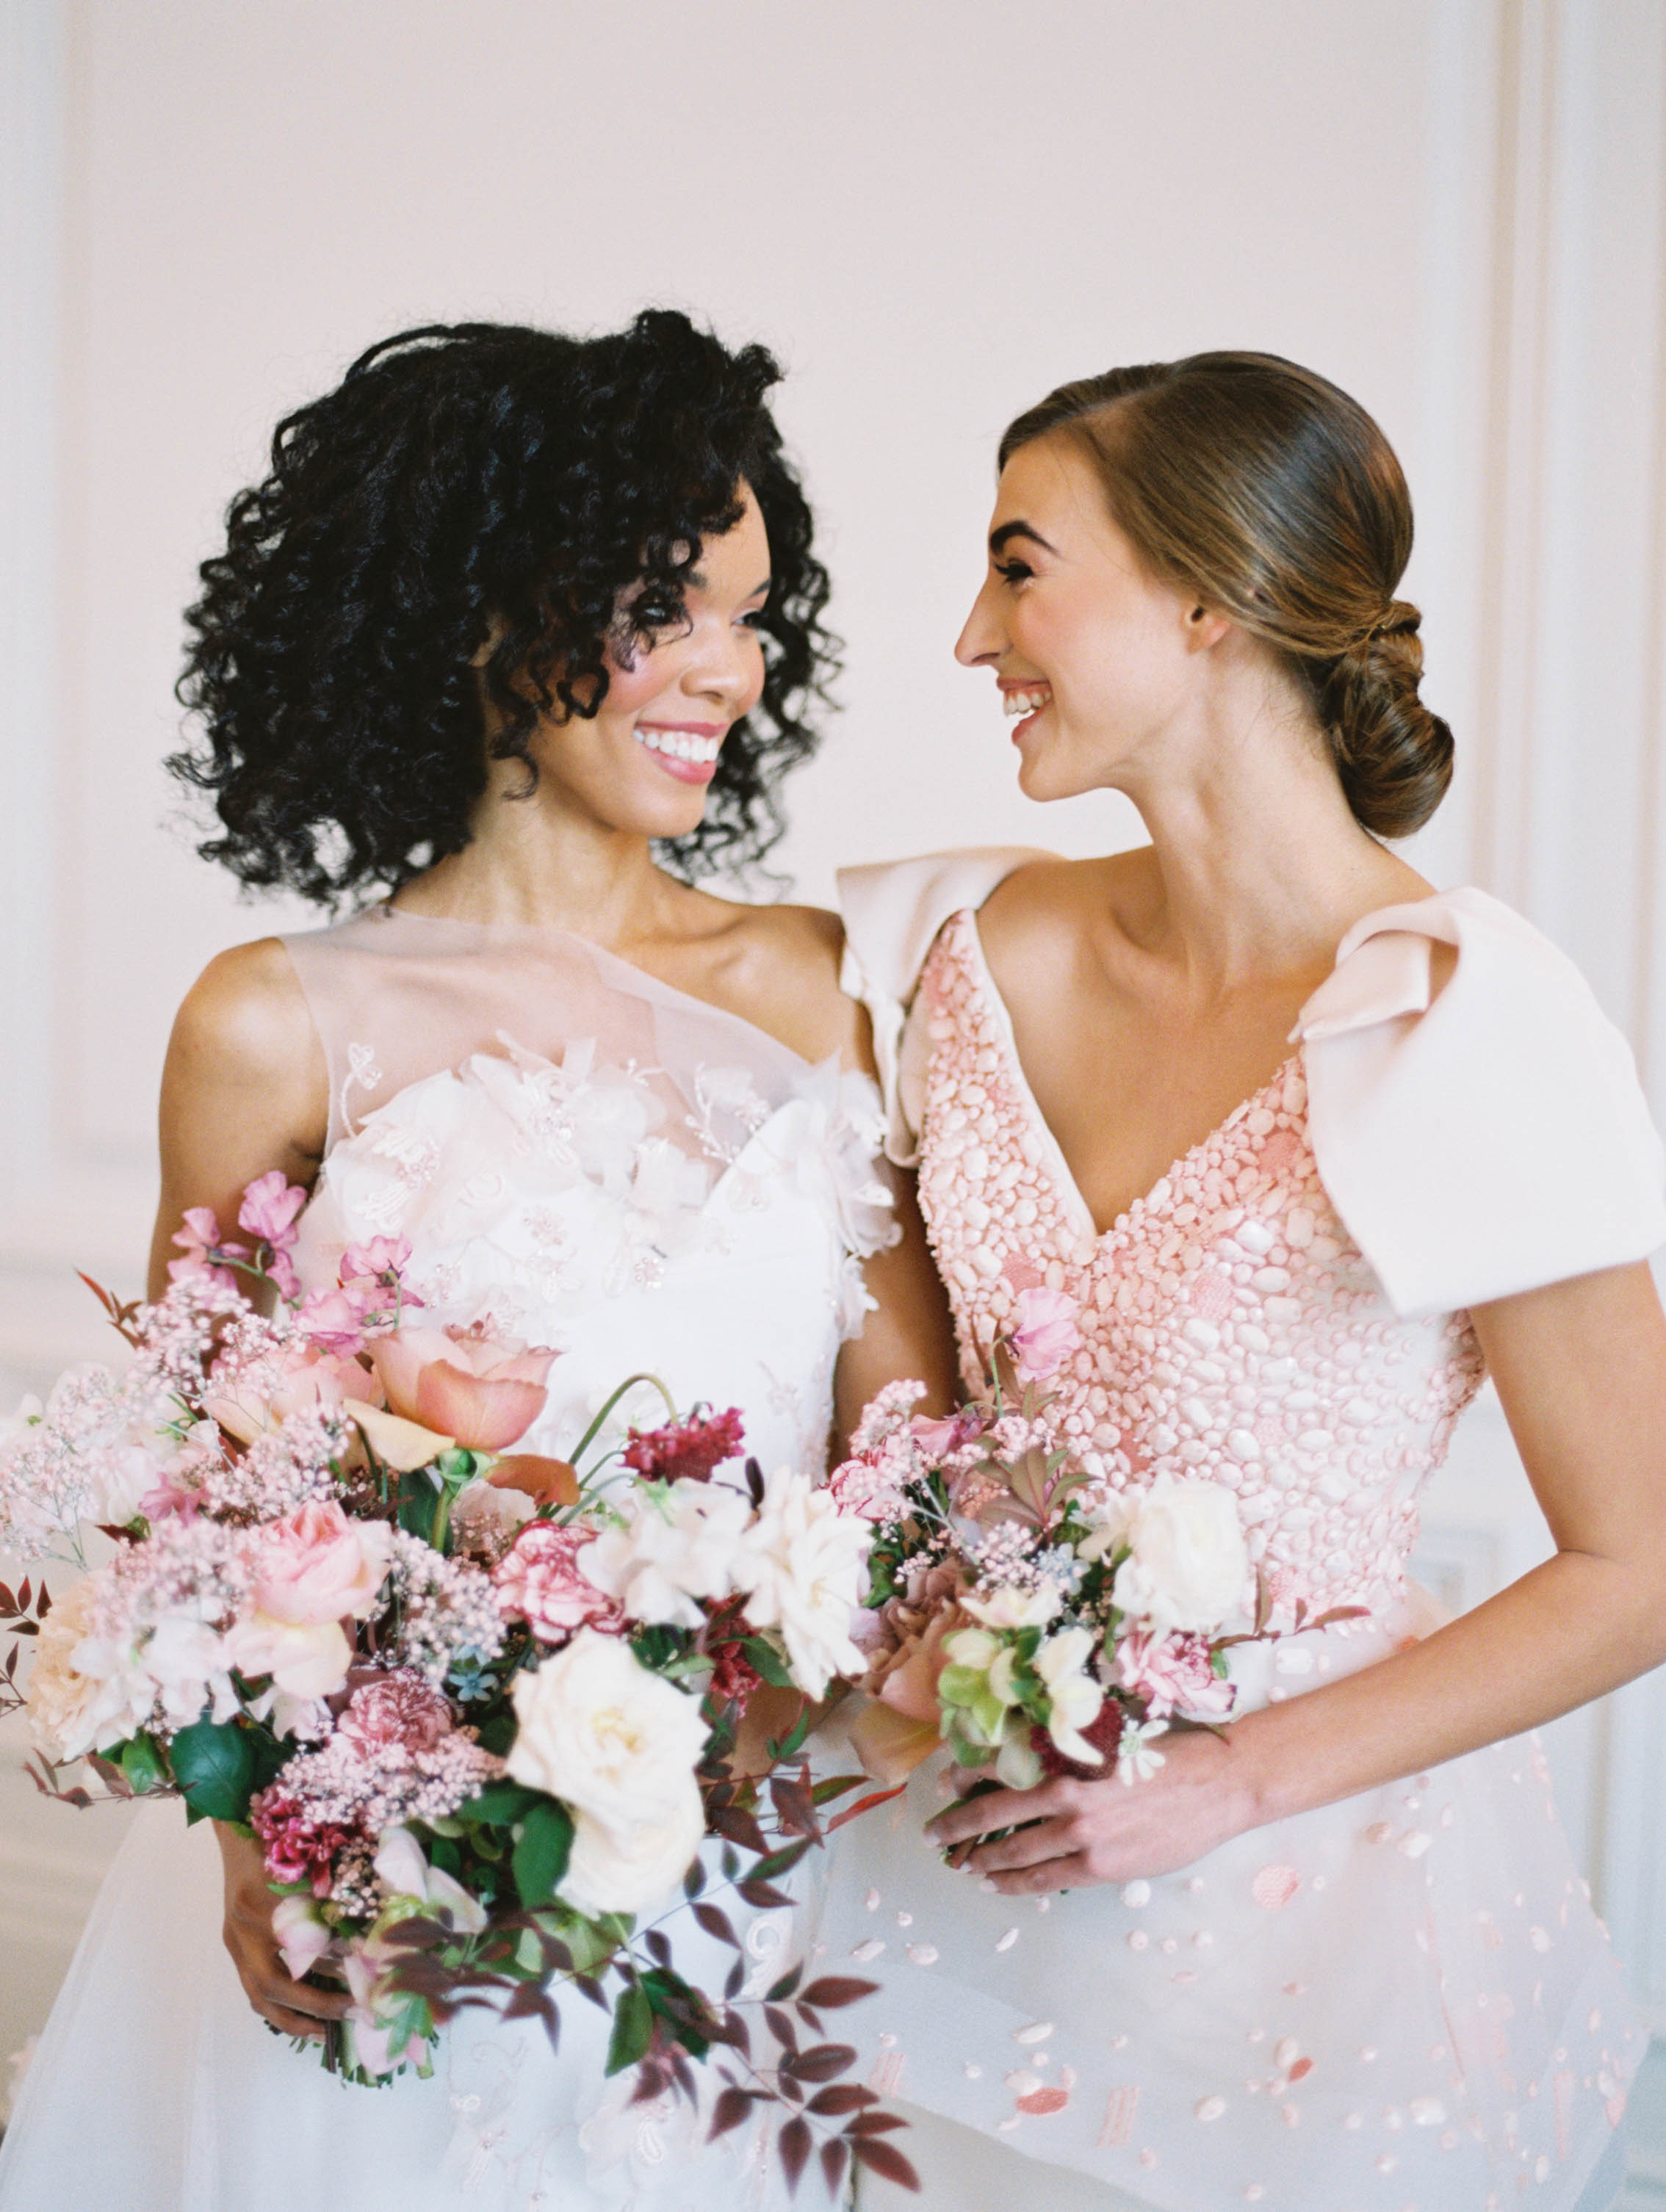 The Ultimate Maid-of-Honor Checklist